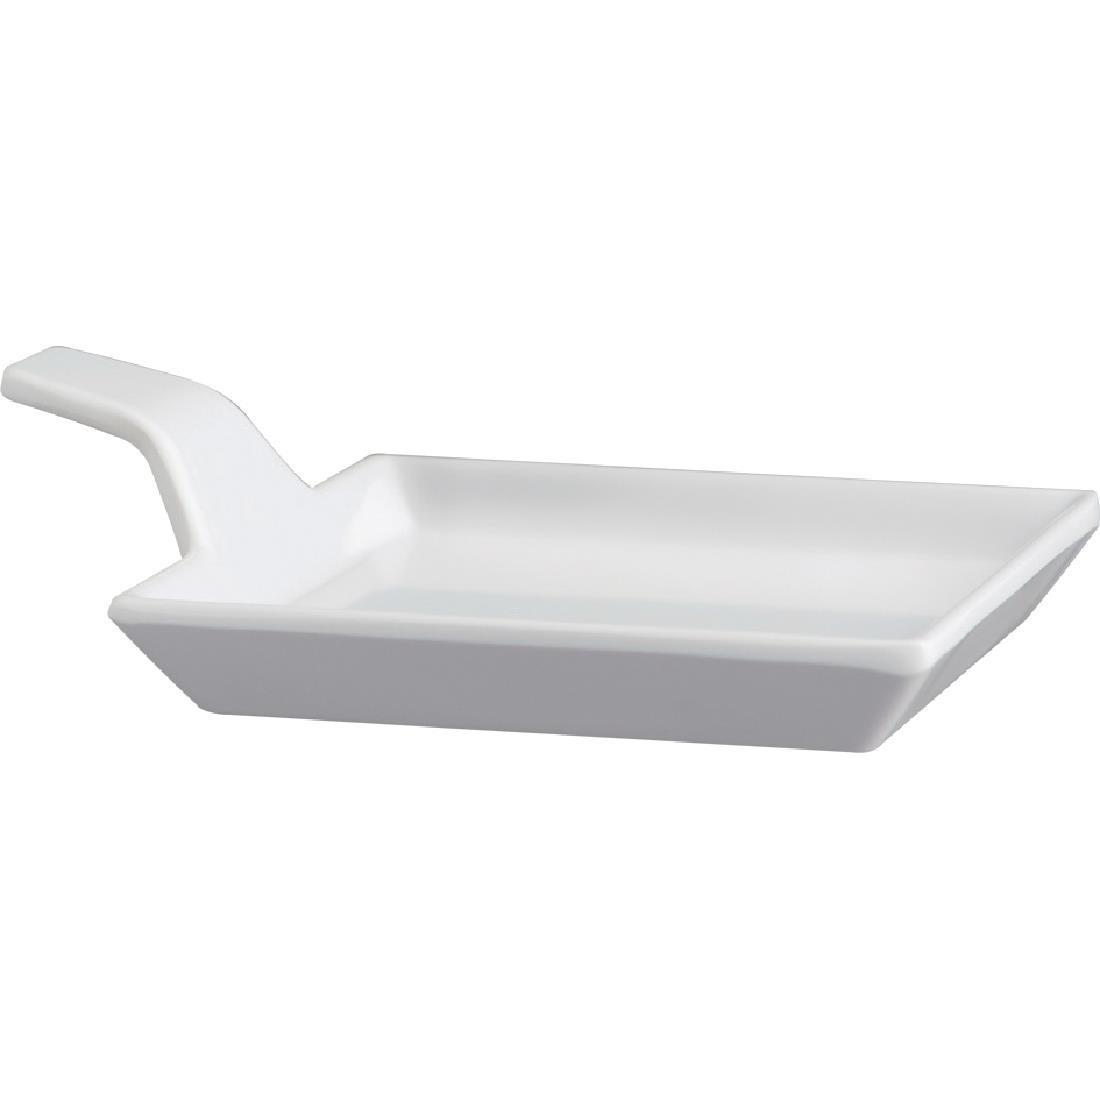 APS Melamine Fingerfood Dish White 95mm - Each - GK832